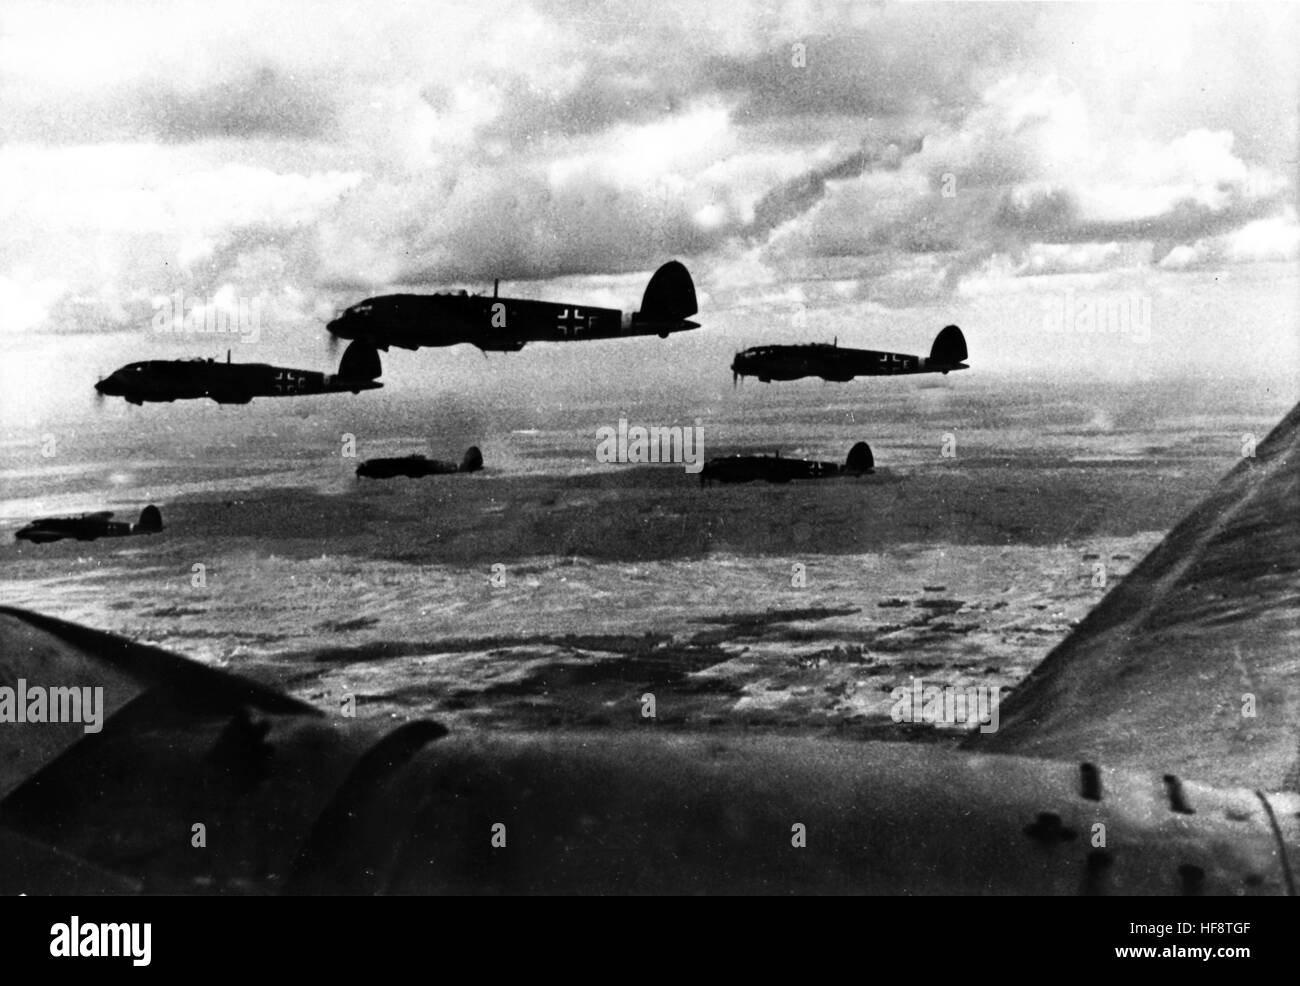 The Nazi propaganda image shows German Wehrmacht Heinkel He 111 combat planes out on a mission on the Eastern Front. - Stock Image